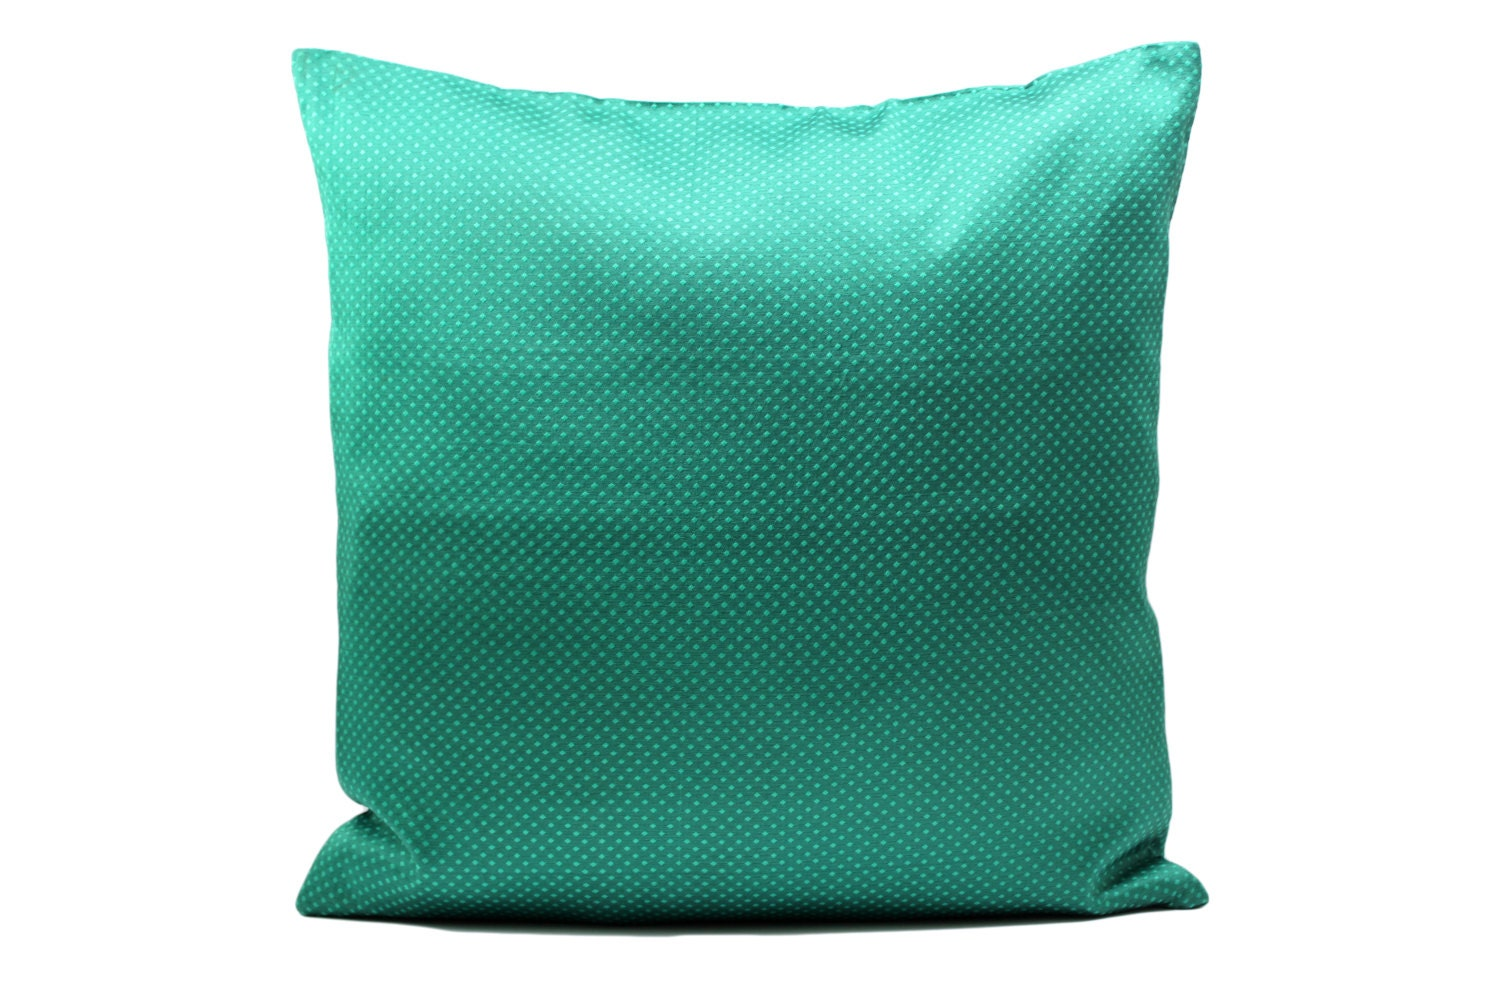 Throw Pillows In Mint Green : Mint Green Pillow coverDecorative throw Pillow Cover by Fabricasia